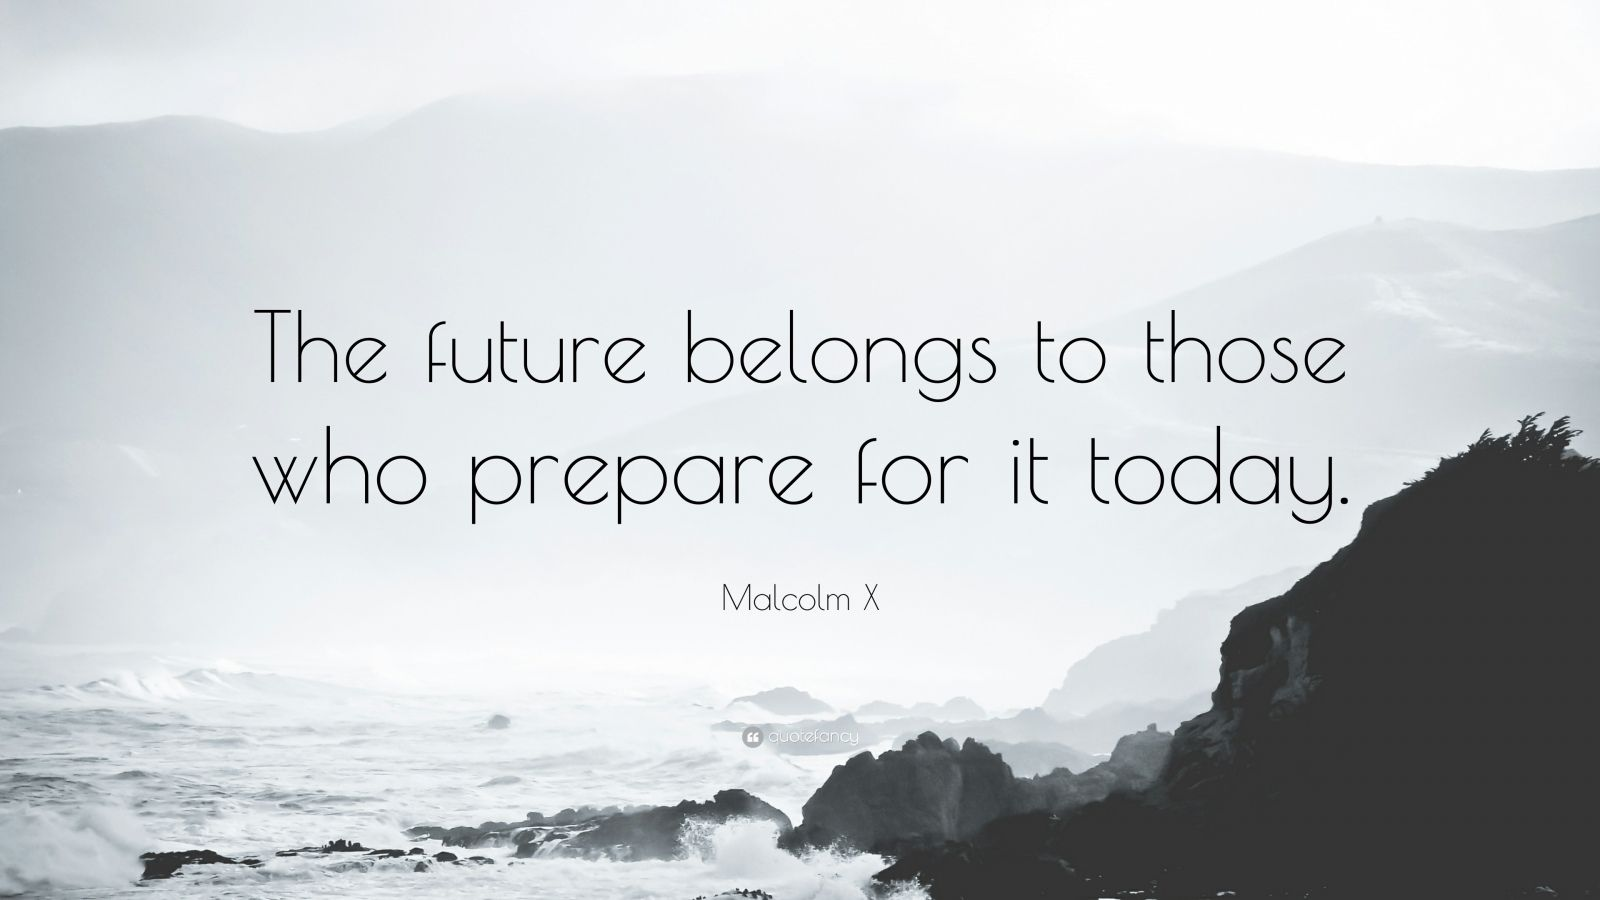 malcolm x quotes 100 quotefancy malcolm x quote the future belongs to those who prepare for it today